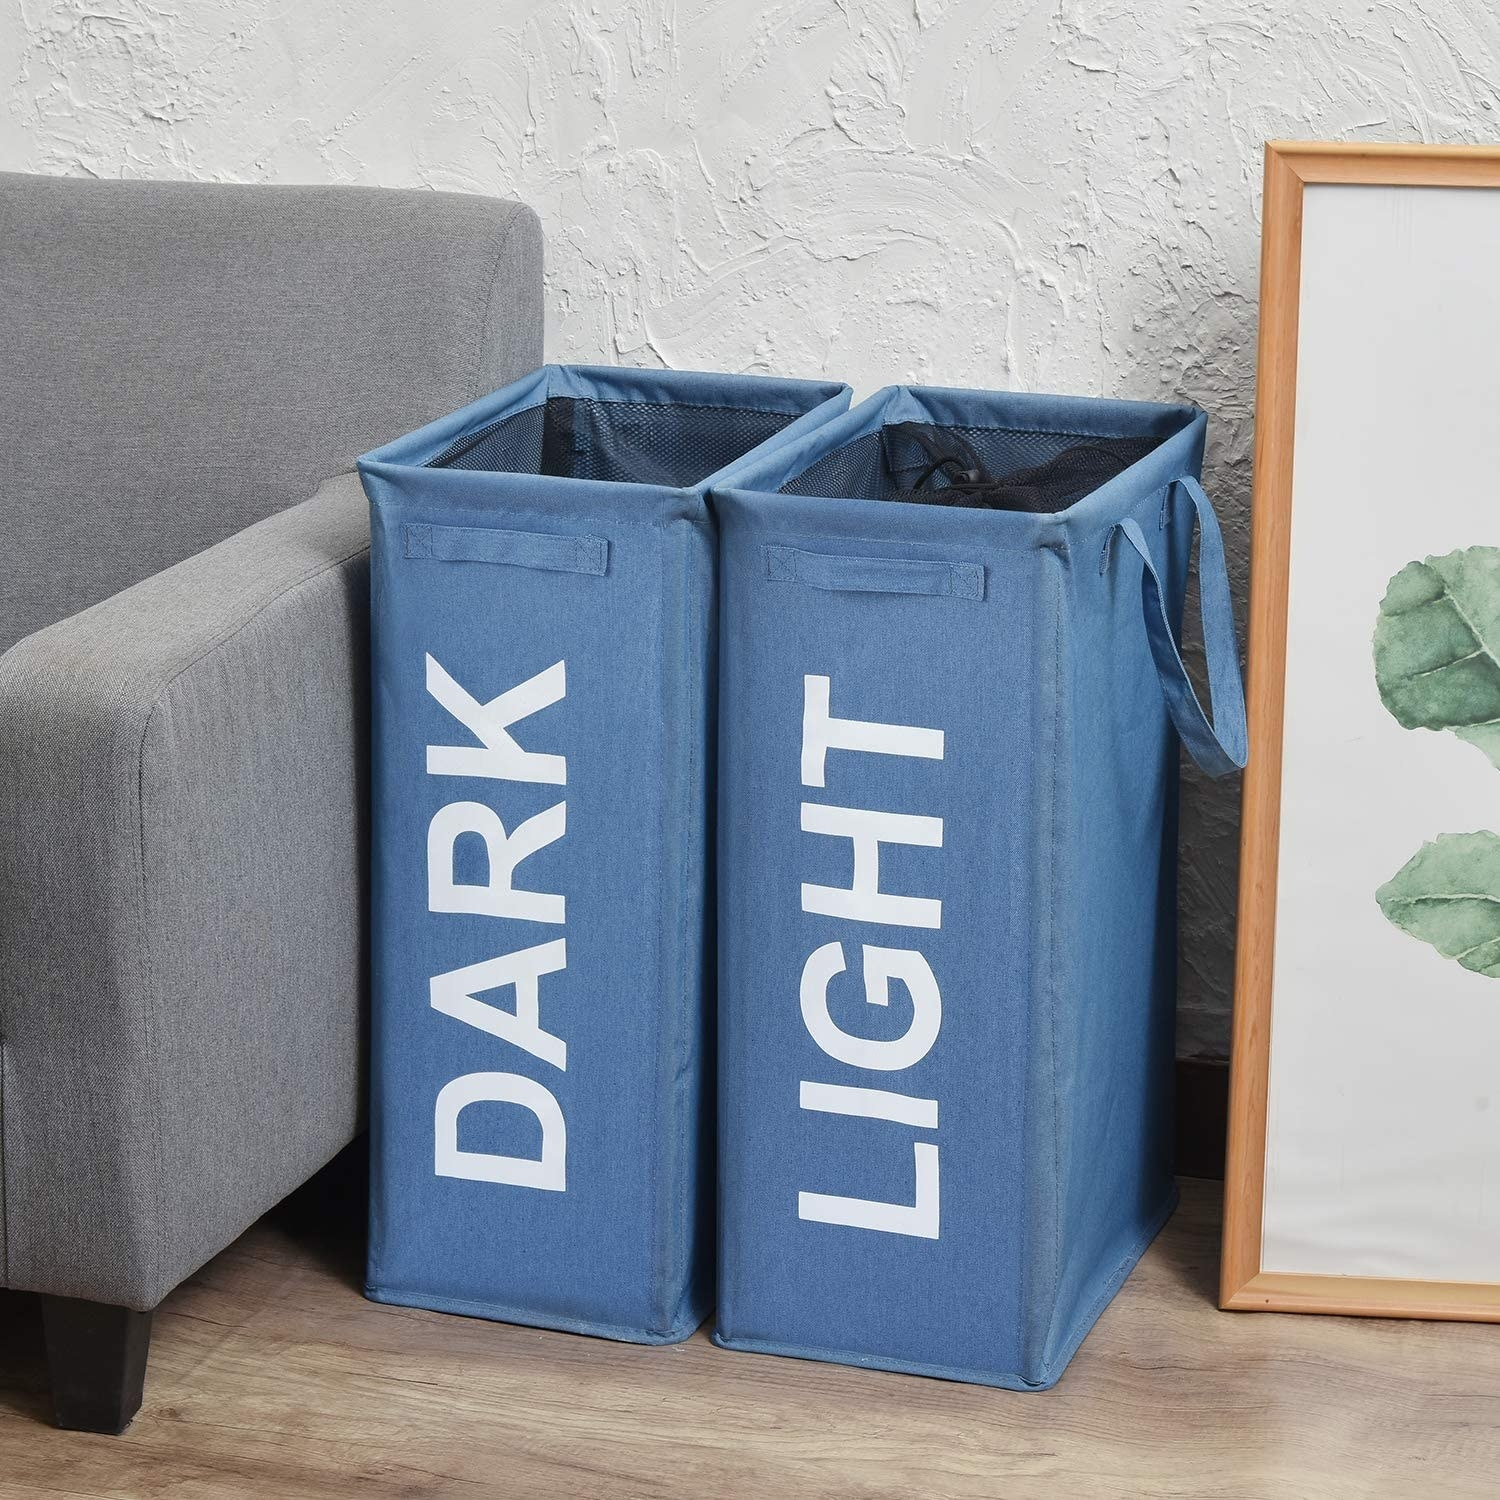 """Laundry hampers labelled """"Dark"""" and """"Light"""" beside a sofa"""